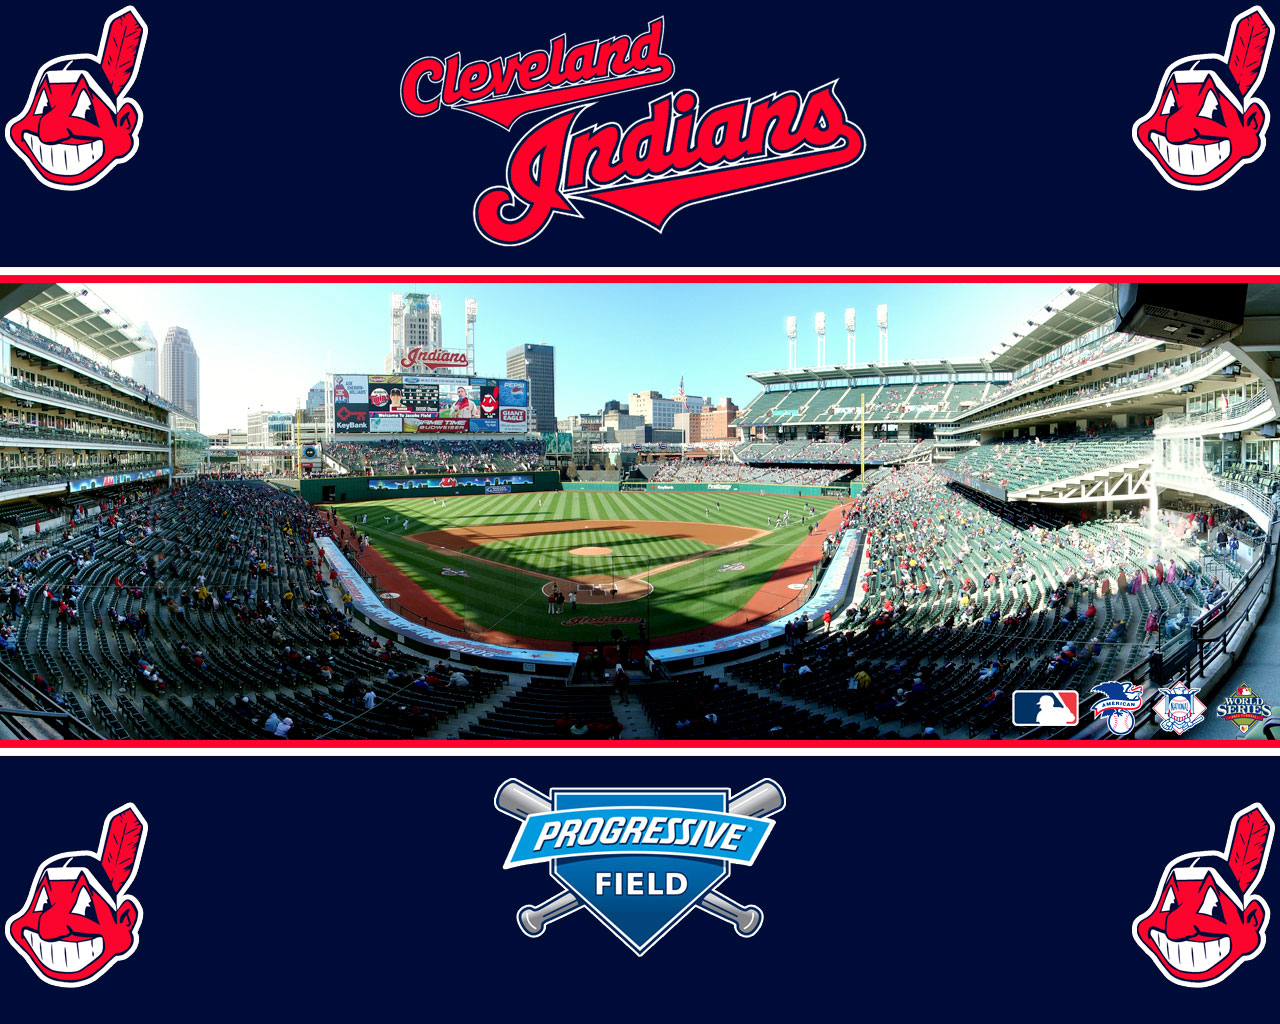 Cleveland Indians Chrome Themes Desktop Wallpapers More 1280x1024